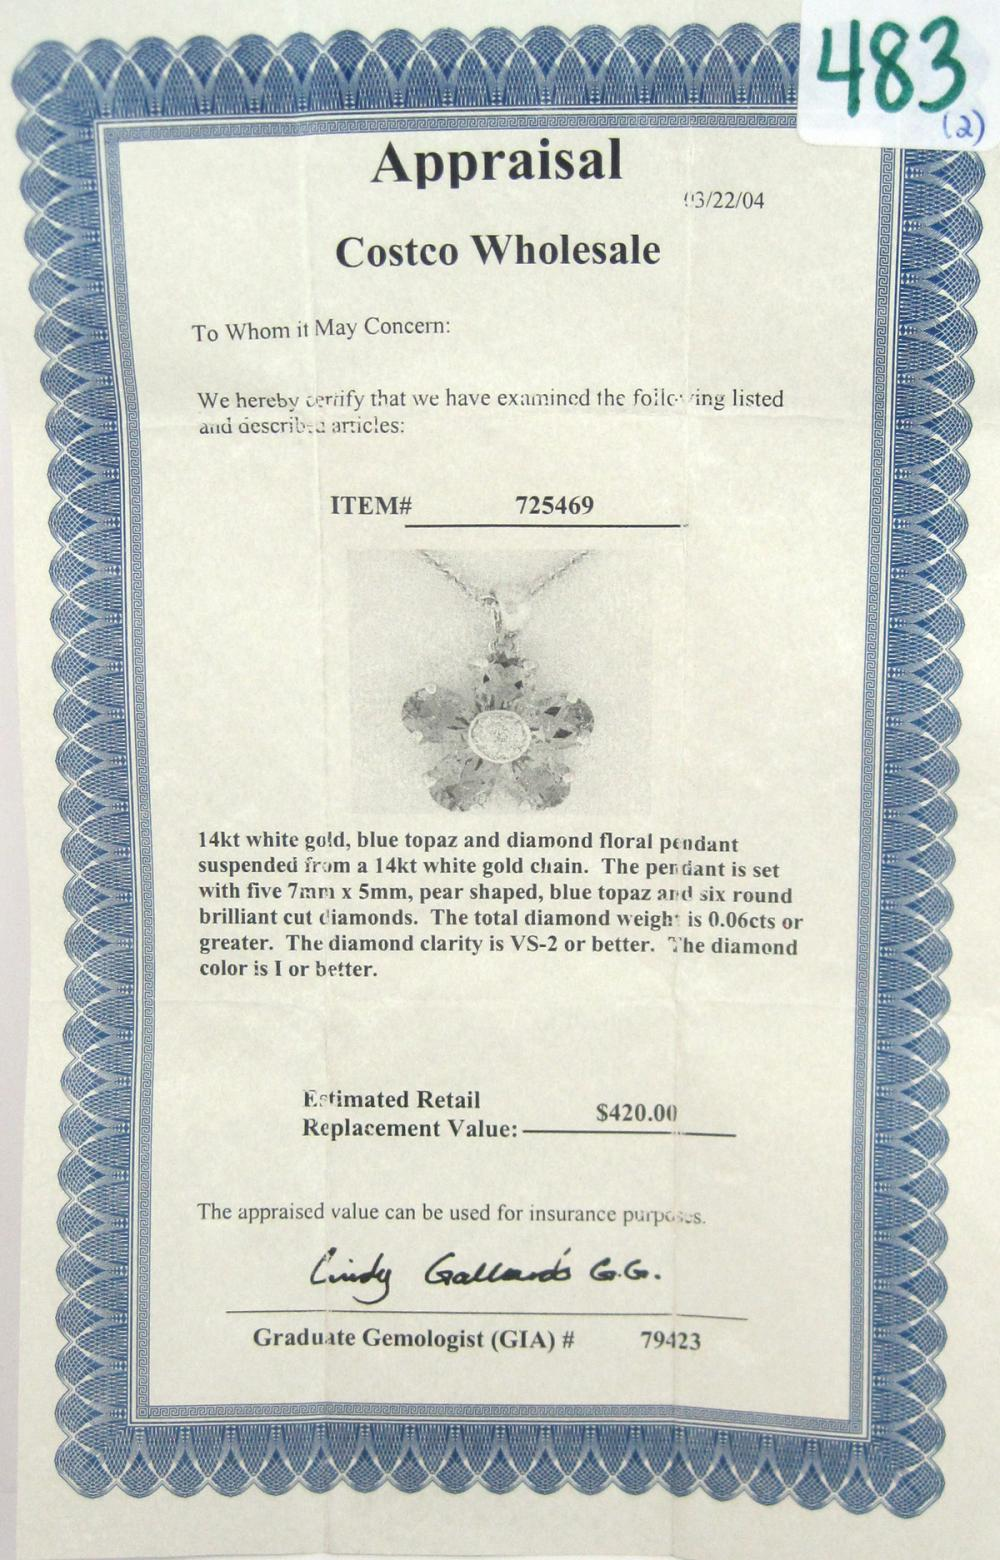 Lot 483: TWO ARTICLES OF DIAMOND AND FOURTEEN KARAT GOLD JE